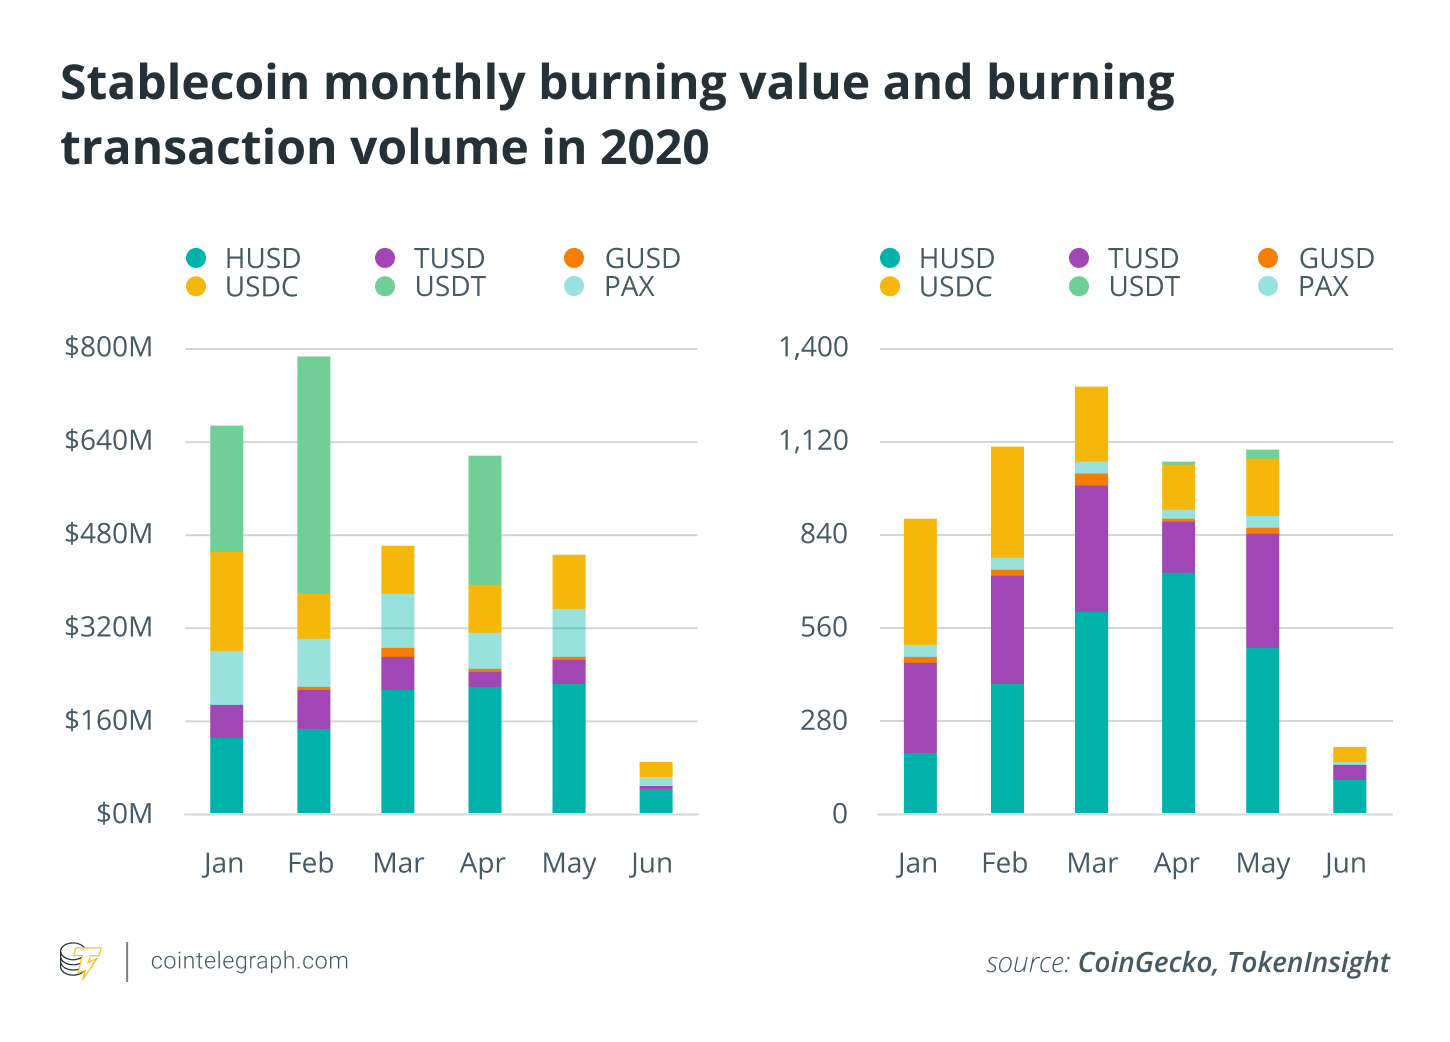 Stablecoin monthly burning value and burning transaction volume in 2020